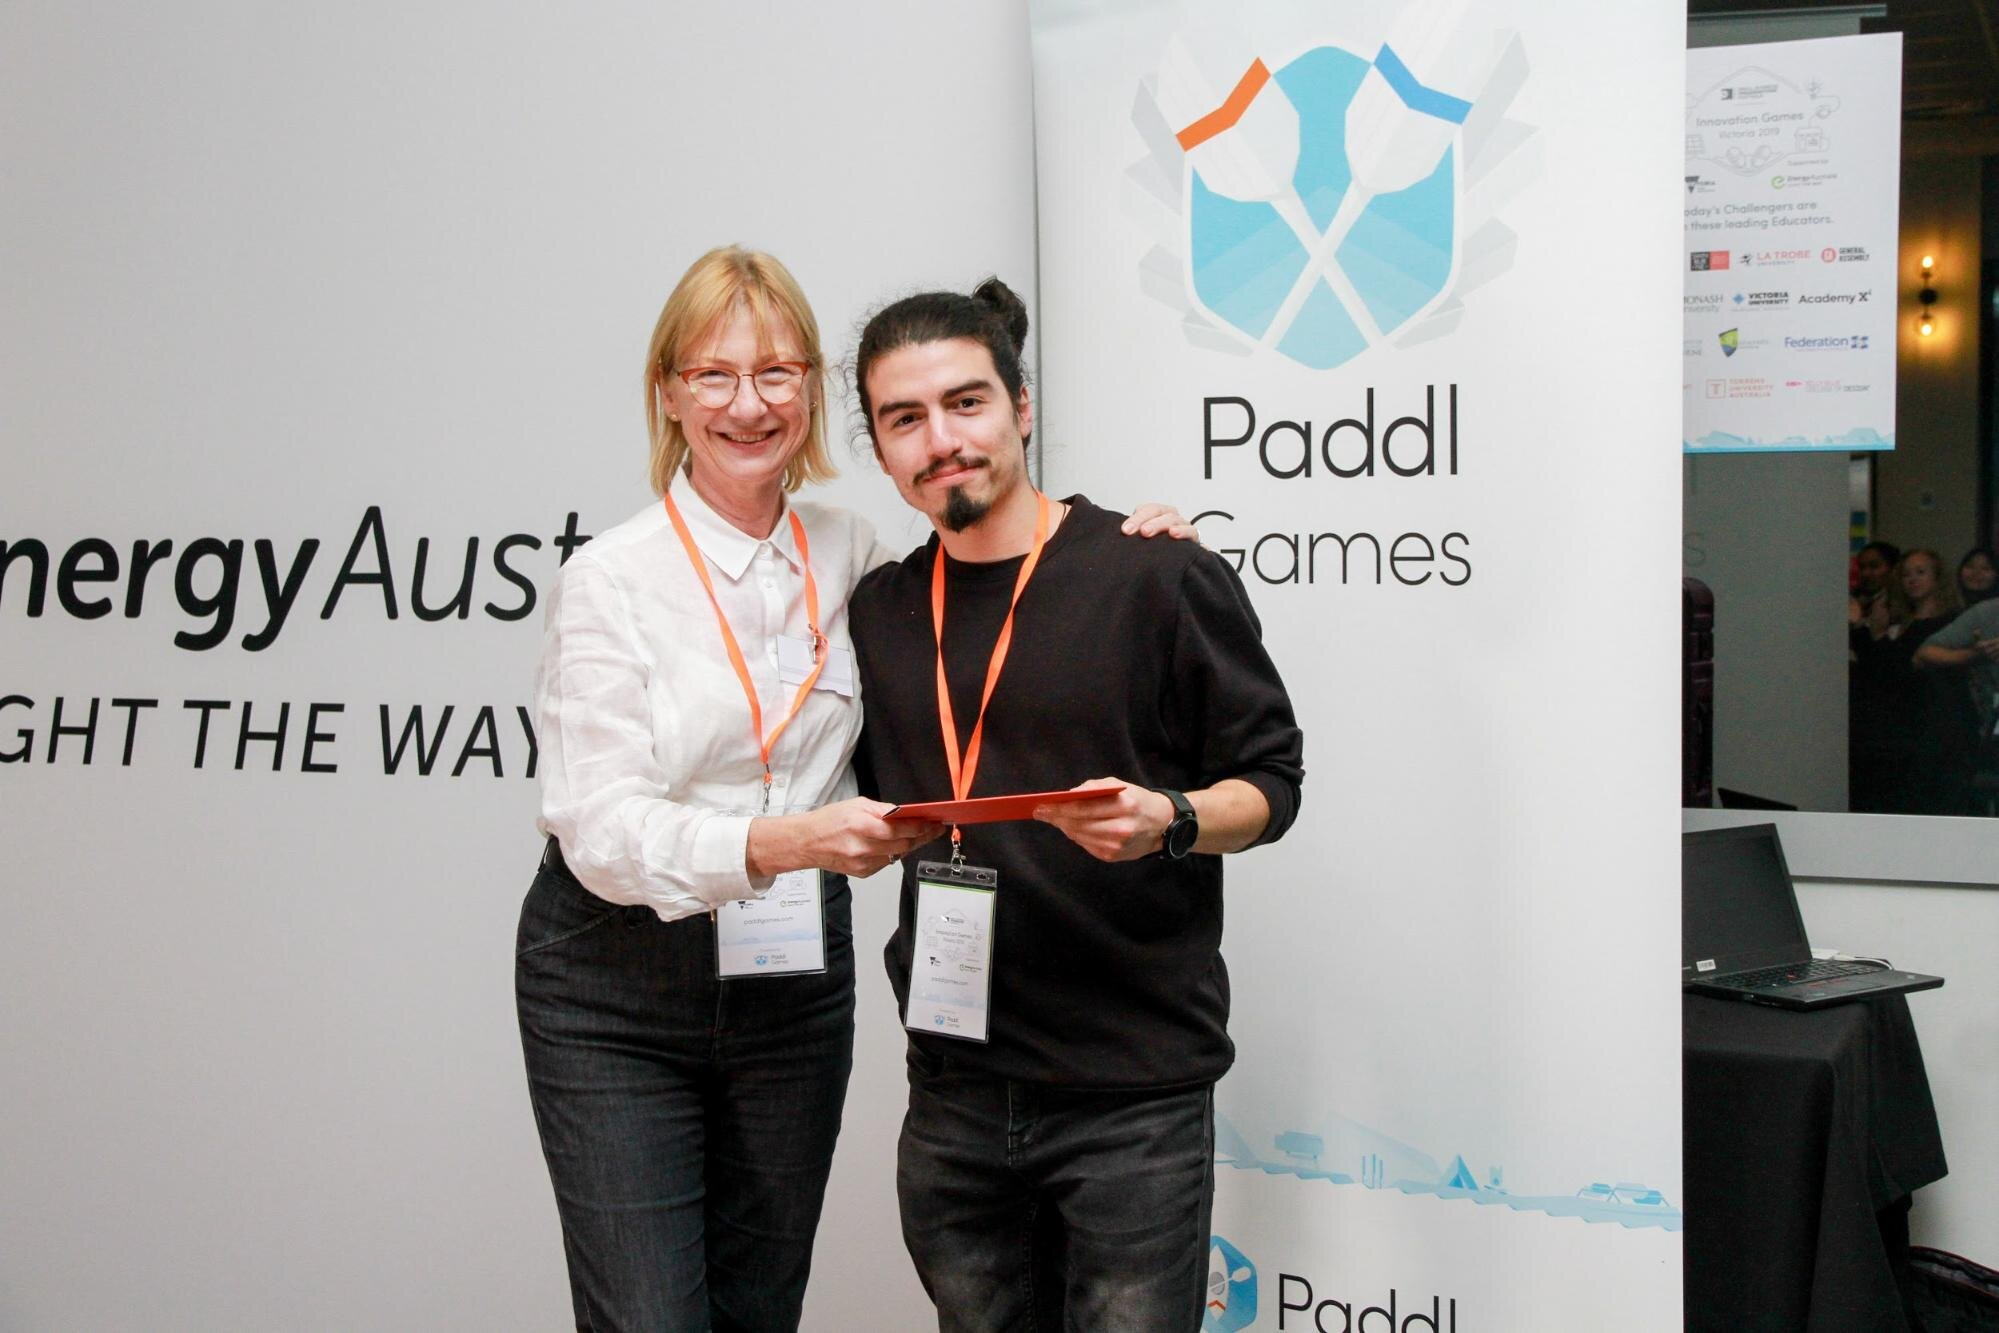 Daniel receiving his prize from and Dominique Fisher, Paddl Co. CEO and Top XP Profile at Paddl!